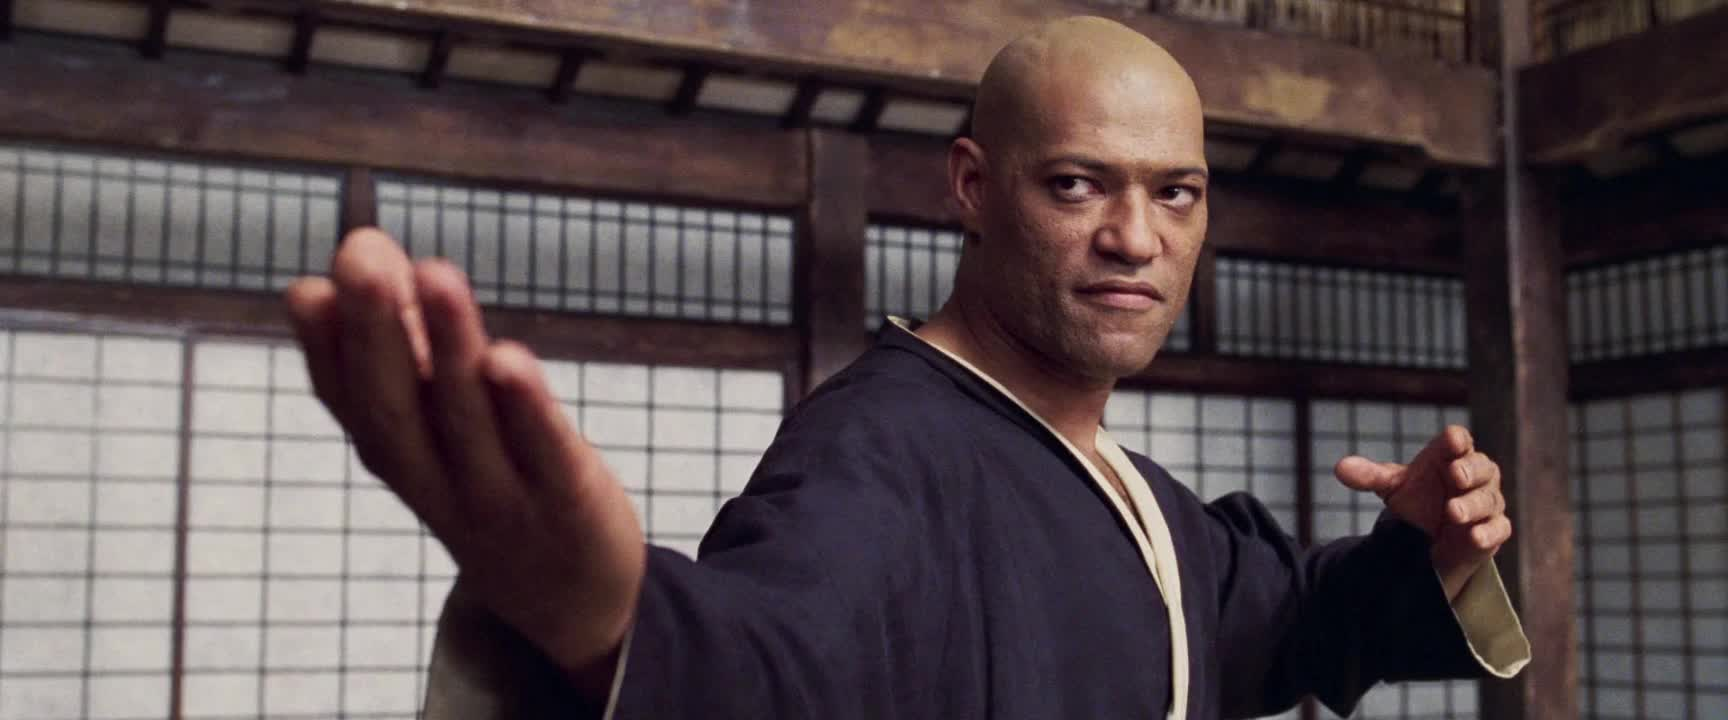 celebs, laurence fishburne, The Matrix - Come on gesture 2 GIFs